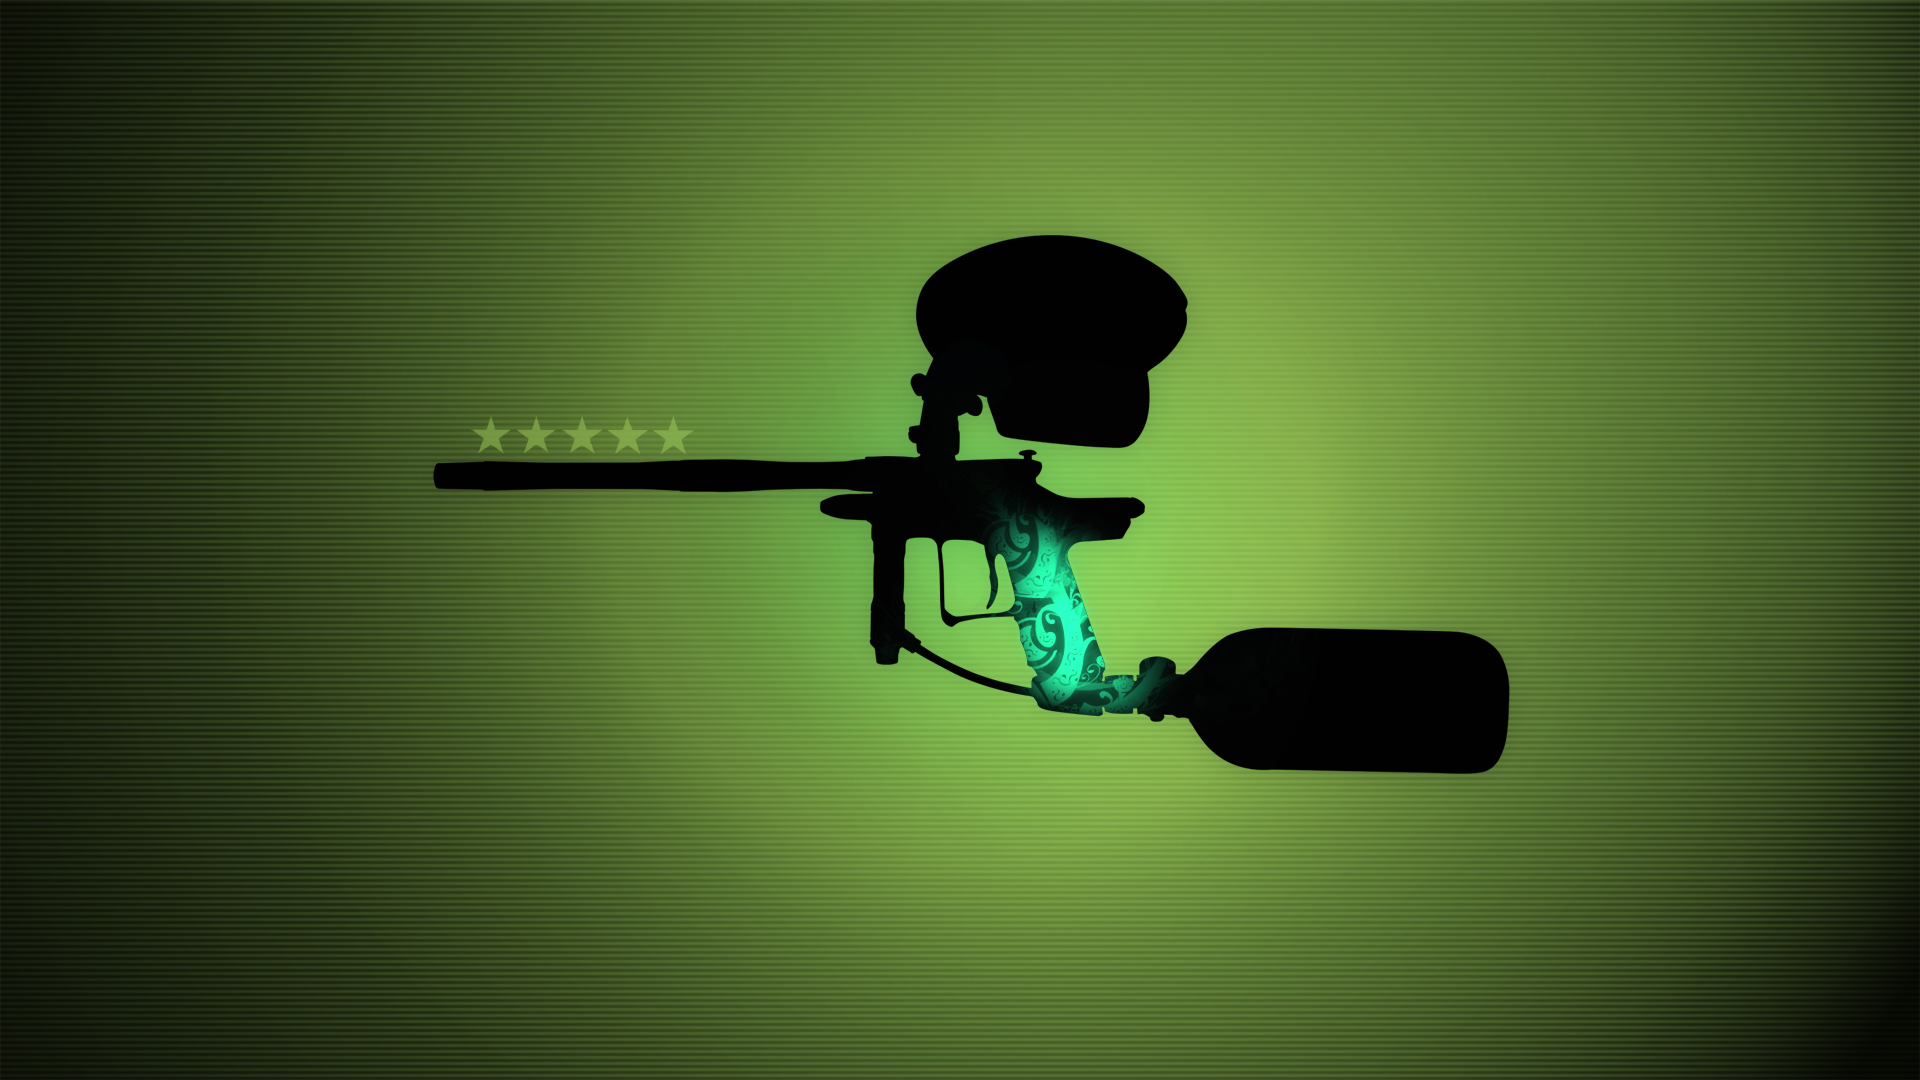 Free Download Paintball Wallpaper Hd 1920x1080 For Your Desktop Mobile Tablet Explore 67 Paintball Wallpaper Empire Paintball Wallpaper Cool Paintball Wallpapers Paintball Wallpaper Computers